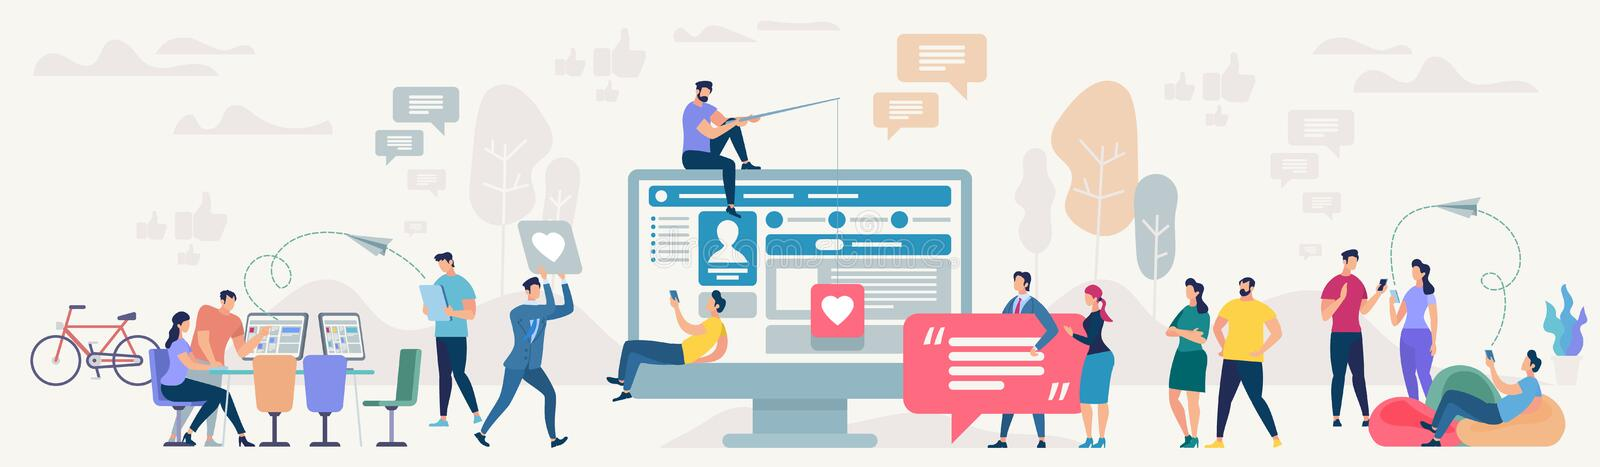 Social Network Site. Vector Illustration. Social Network Site and Teamwork Concept. Communication systems and Digital Technologies. Networking People and royalty free illustration